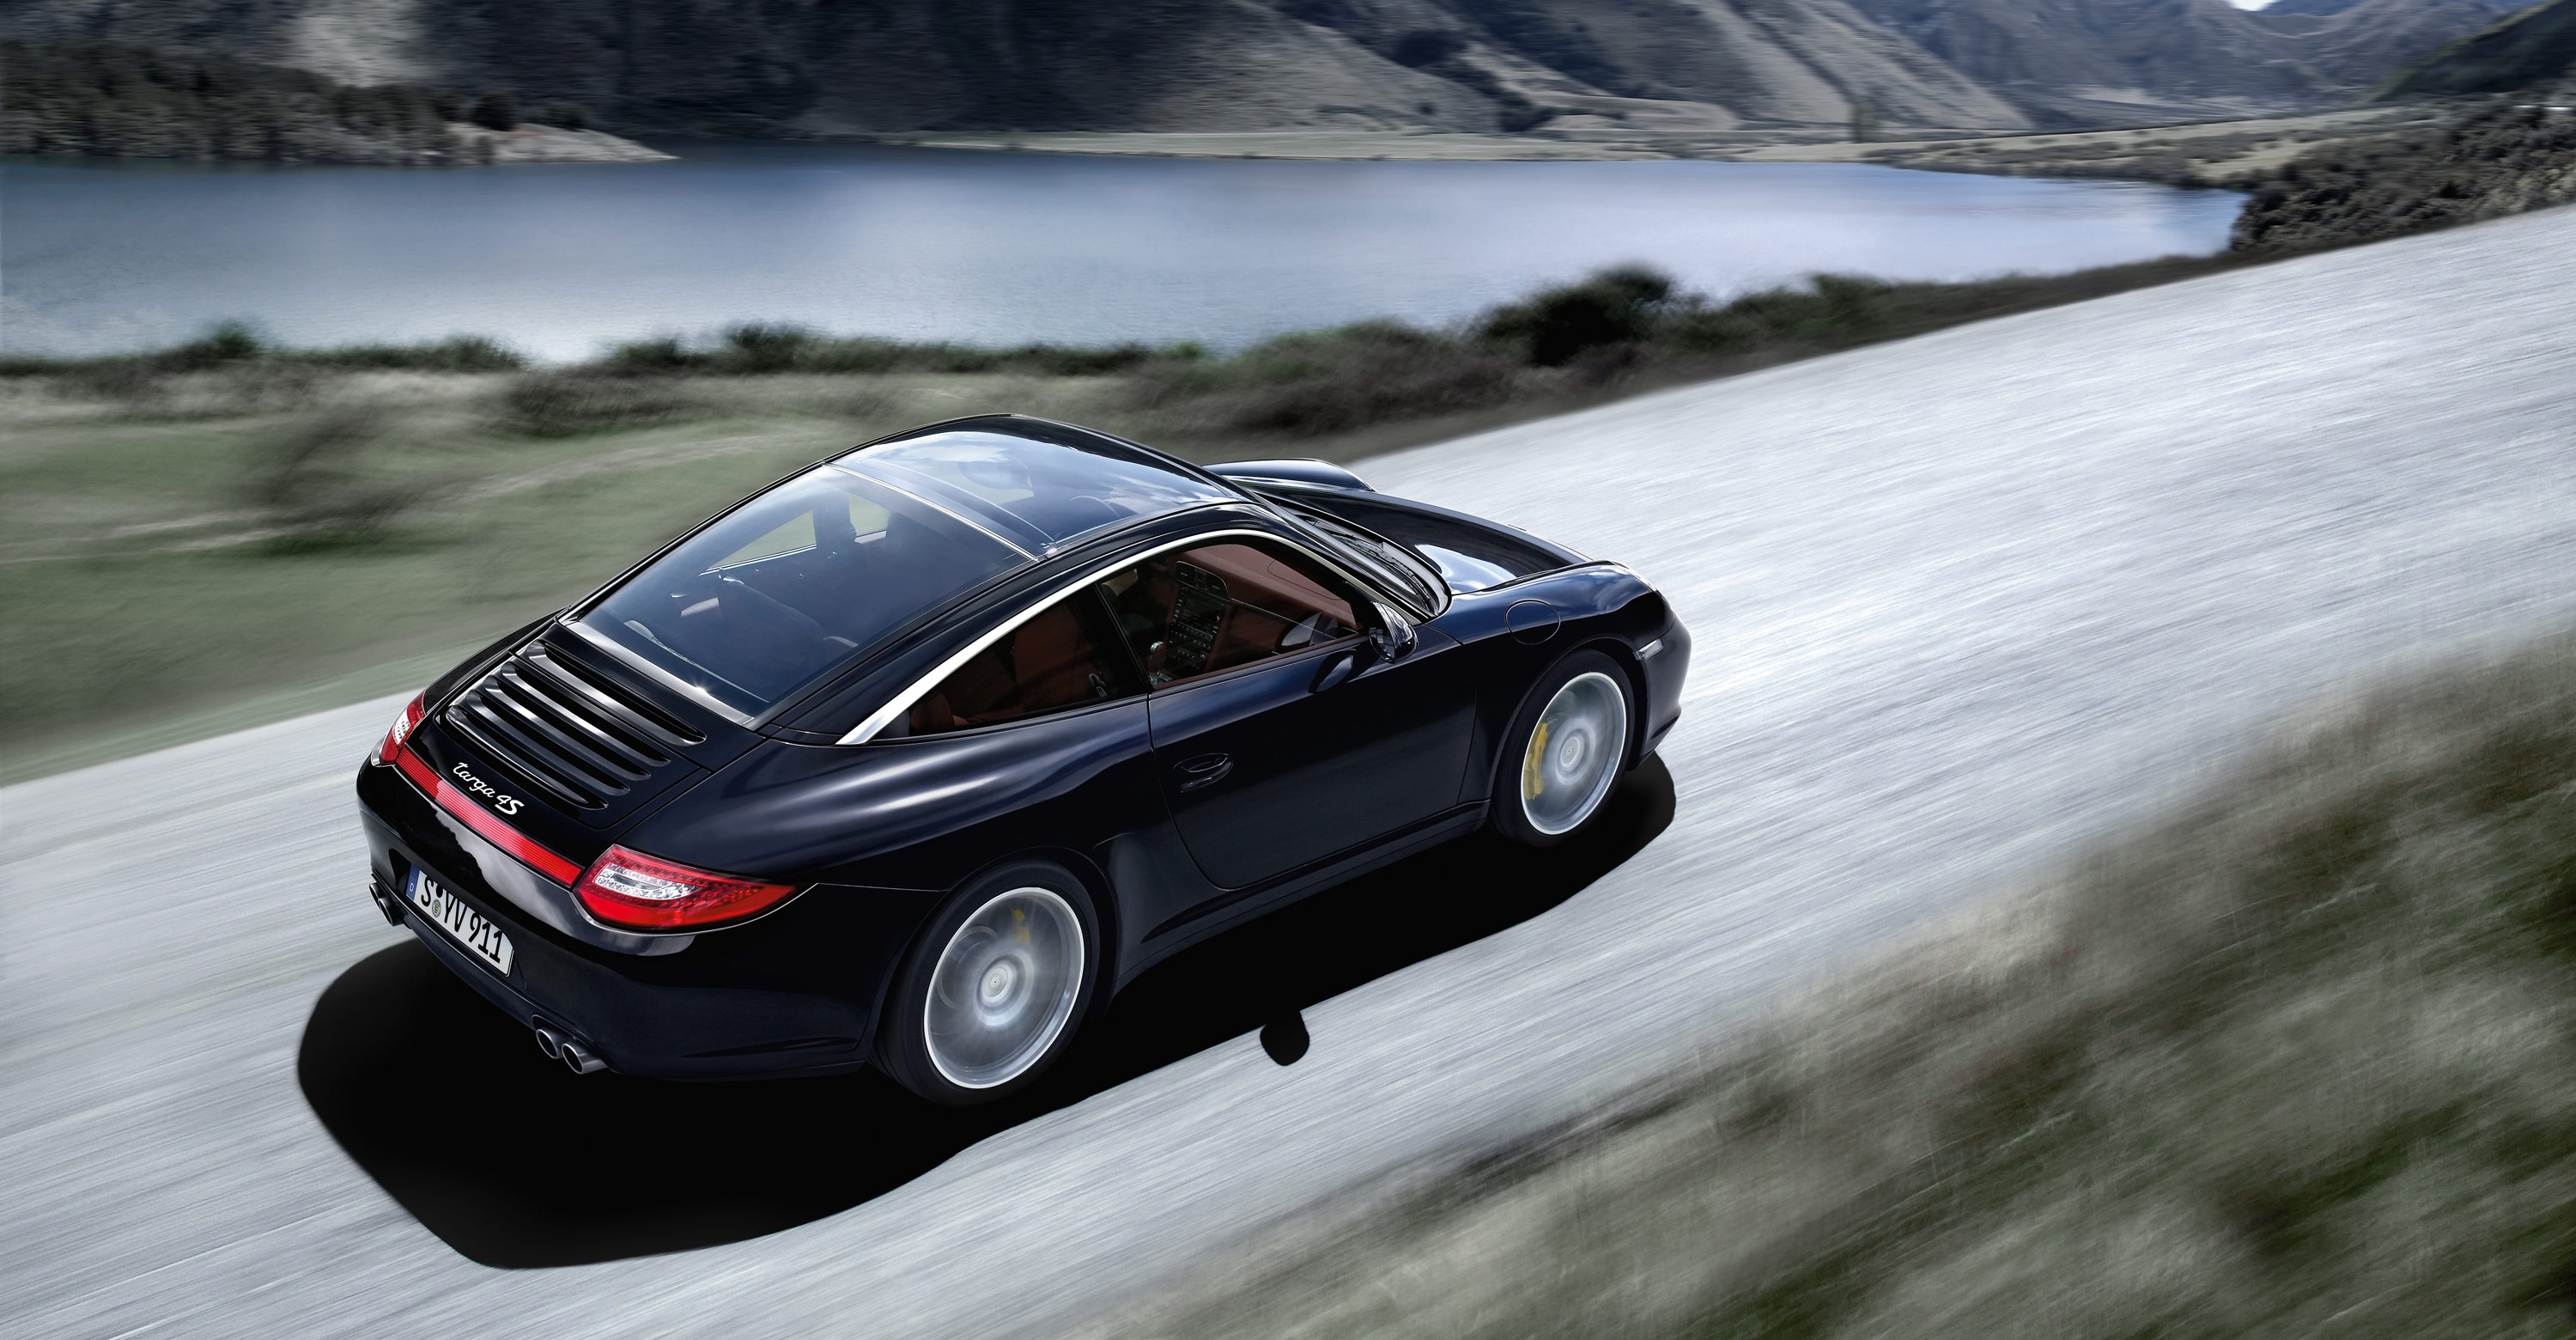 2011 Black Porsche 911 Targa 4s Wallpapers